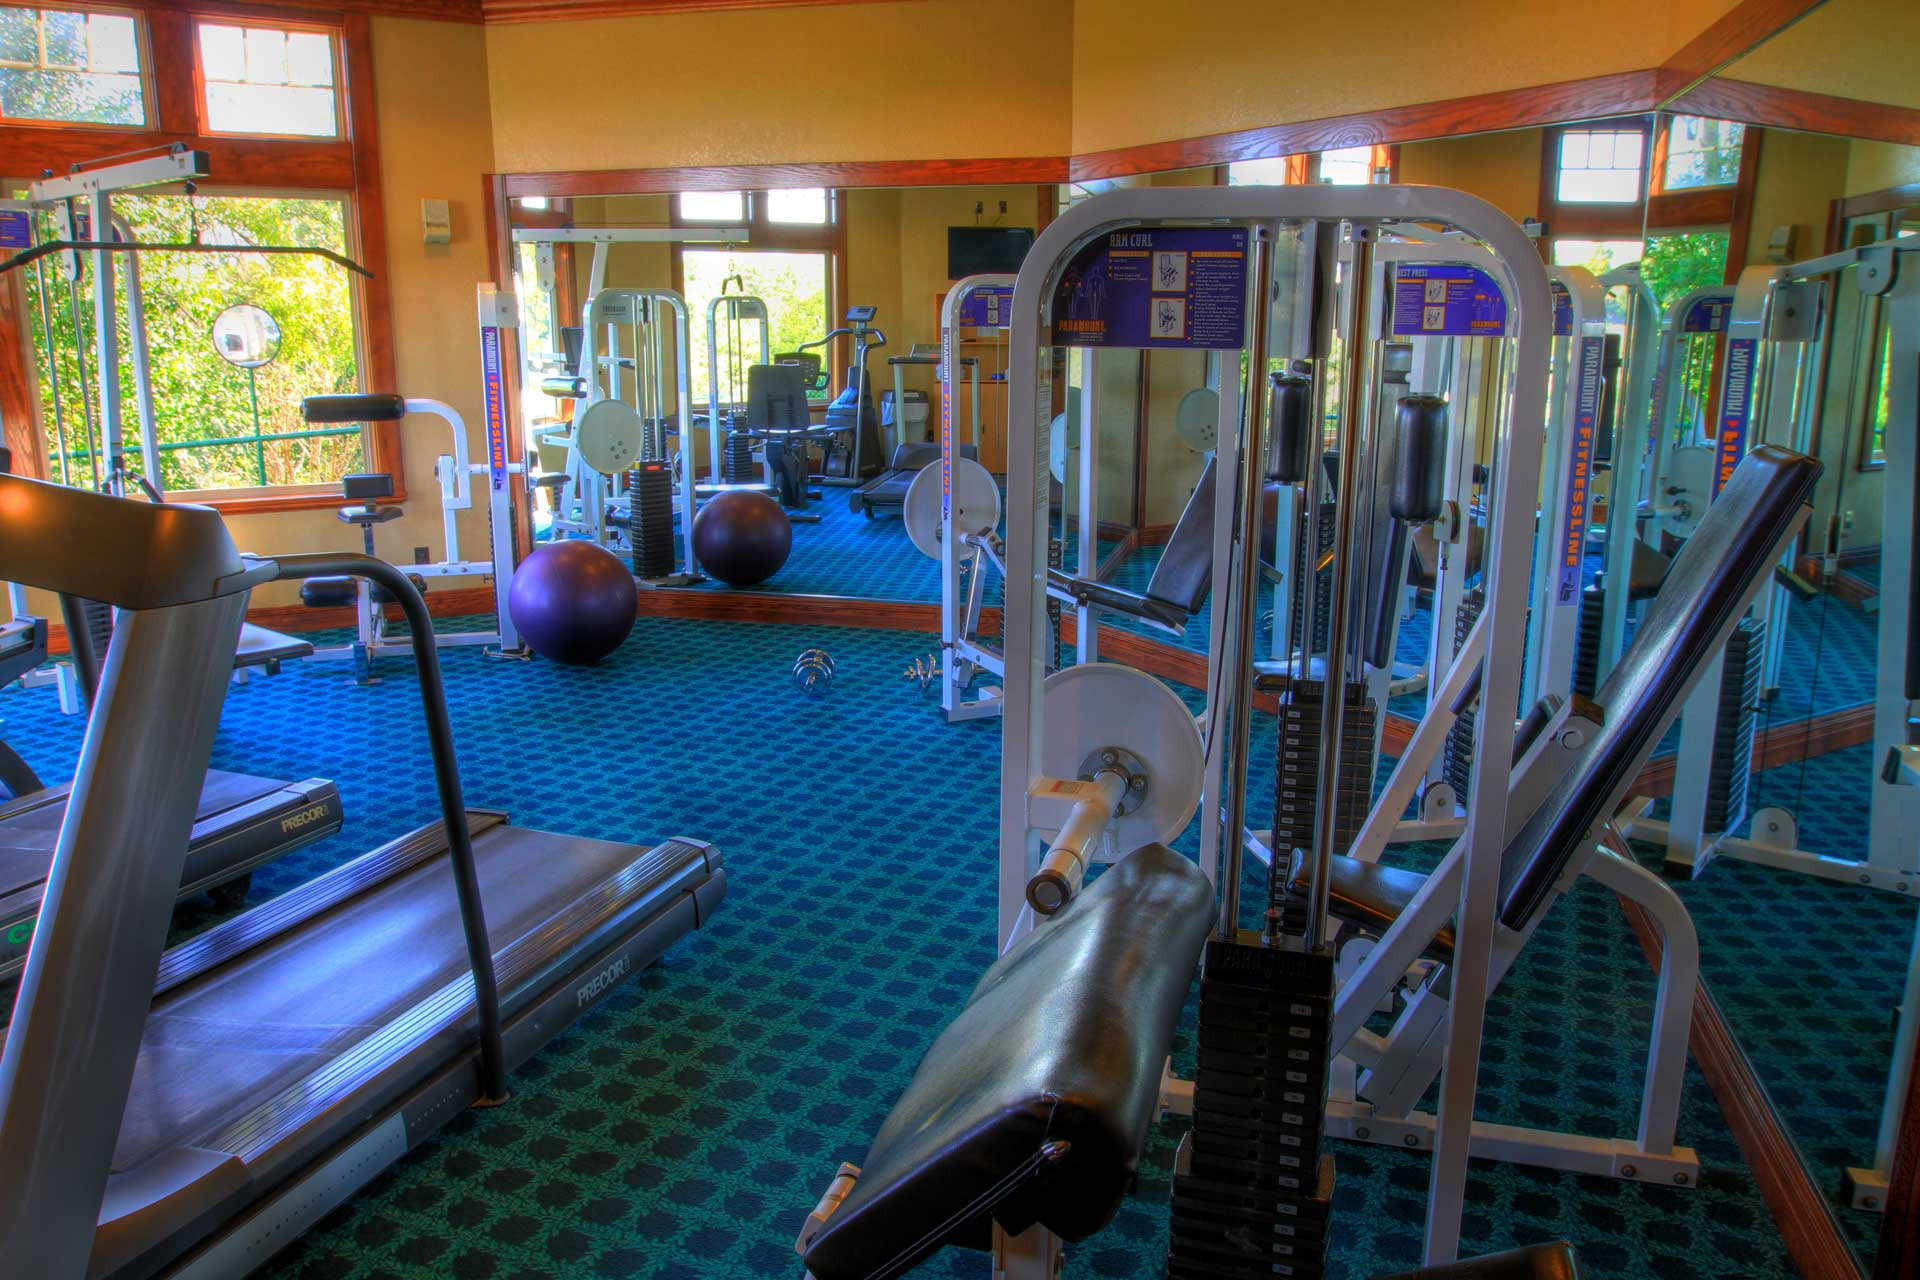 Private fitness facility victoria club riverside ca